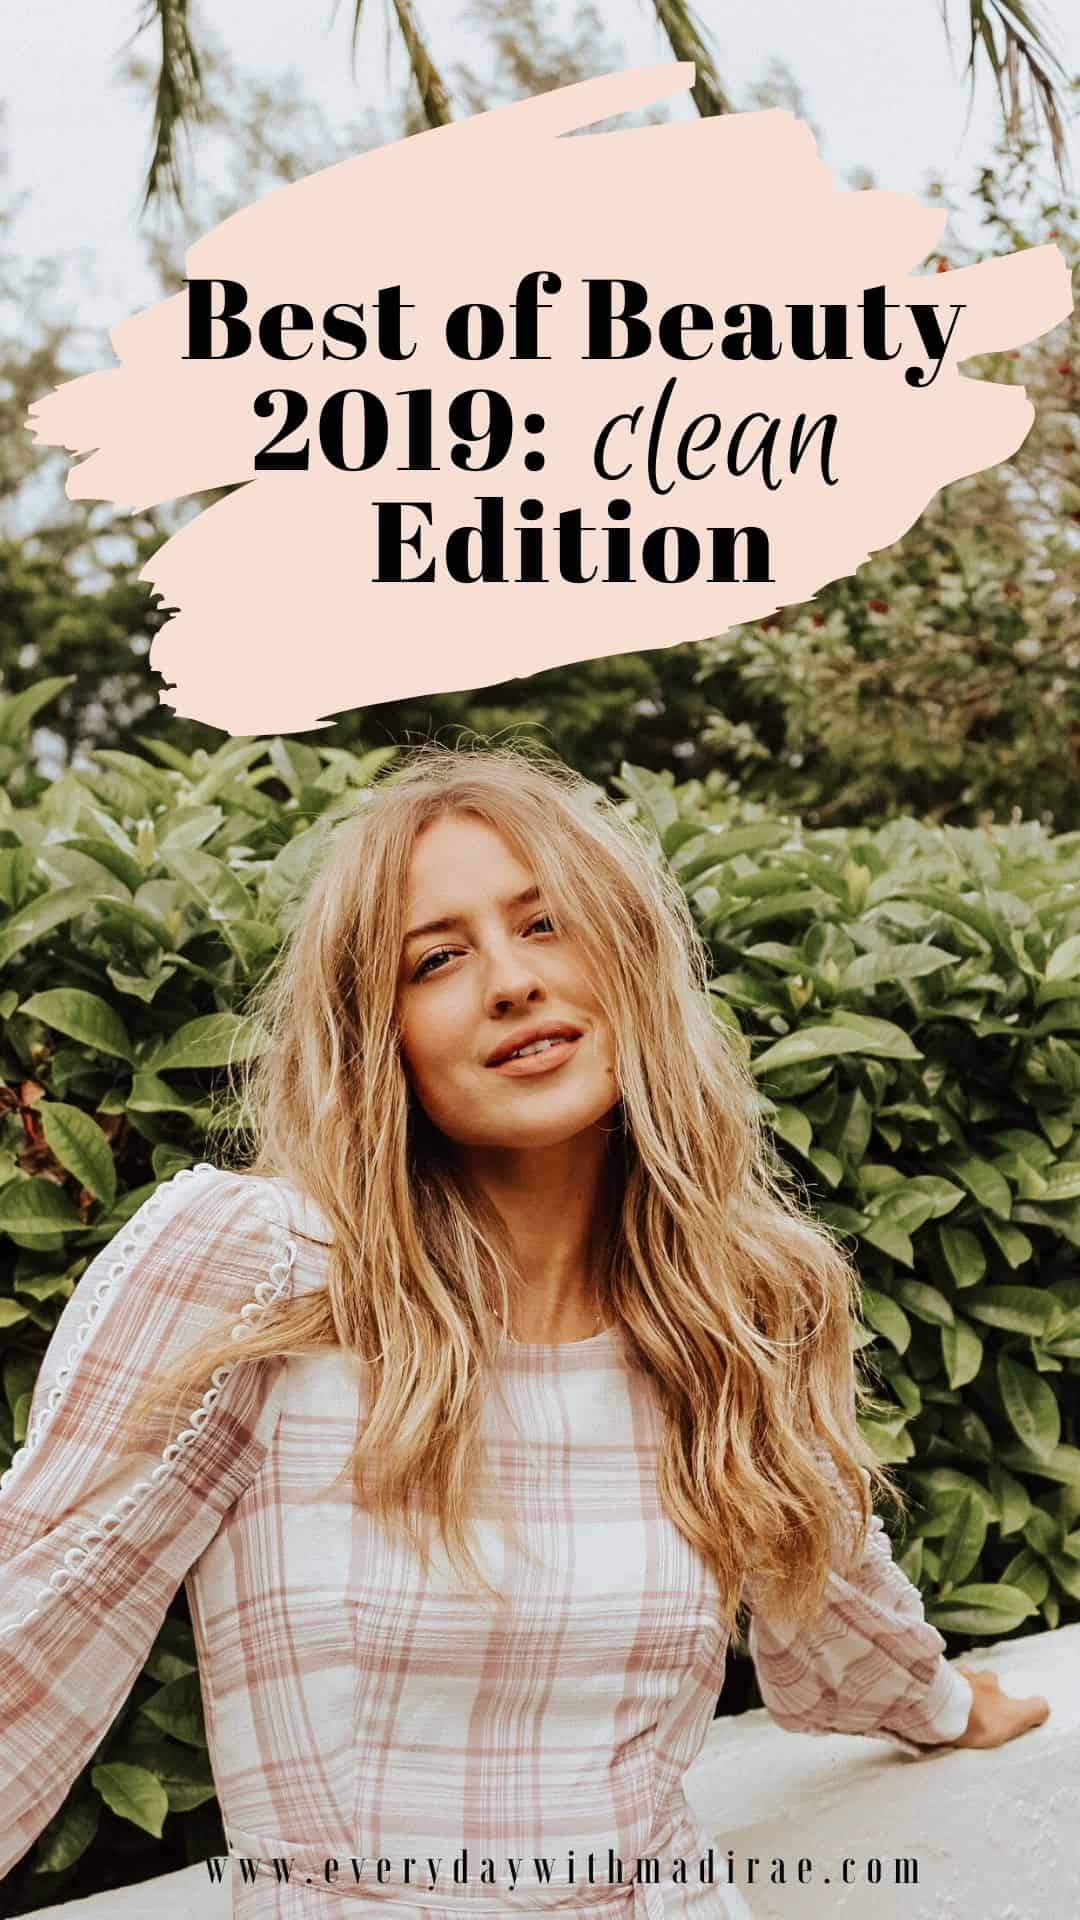 The Best of Beauty 2019: An ultimate list of clean beauty favorites, including 50 amazing products for your hair, skin, nails & MORE!